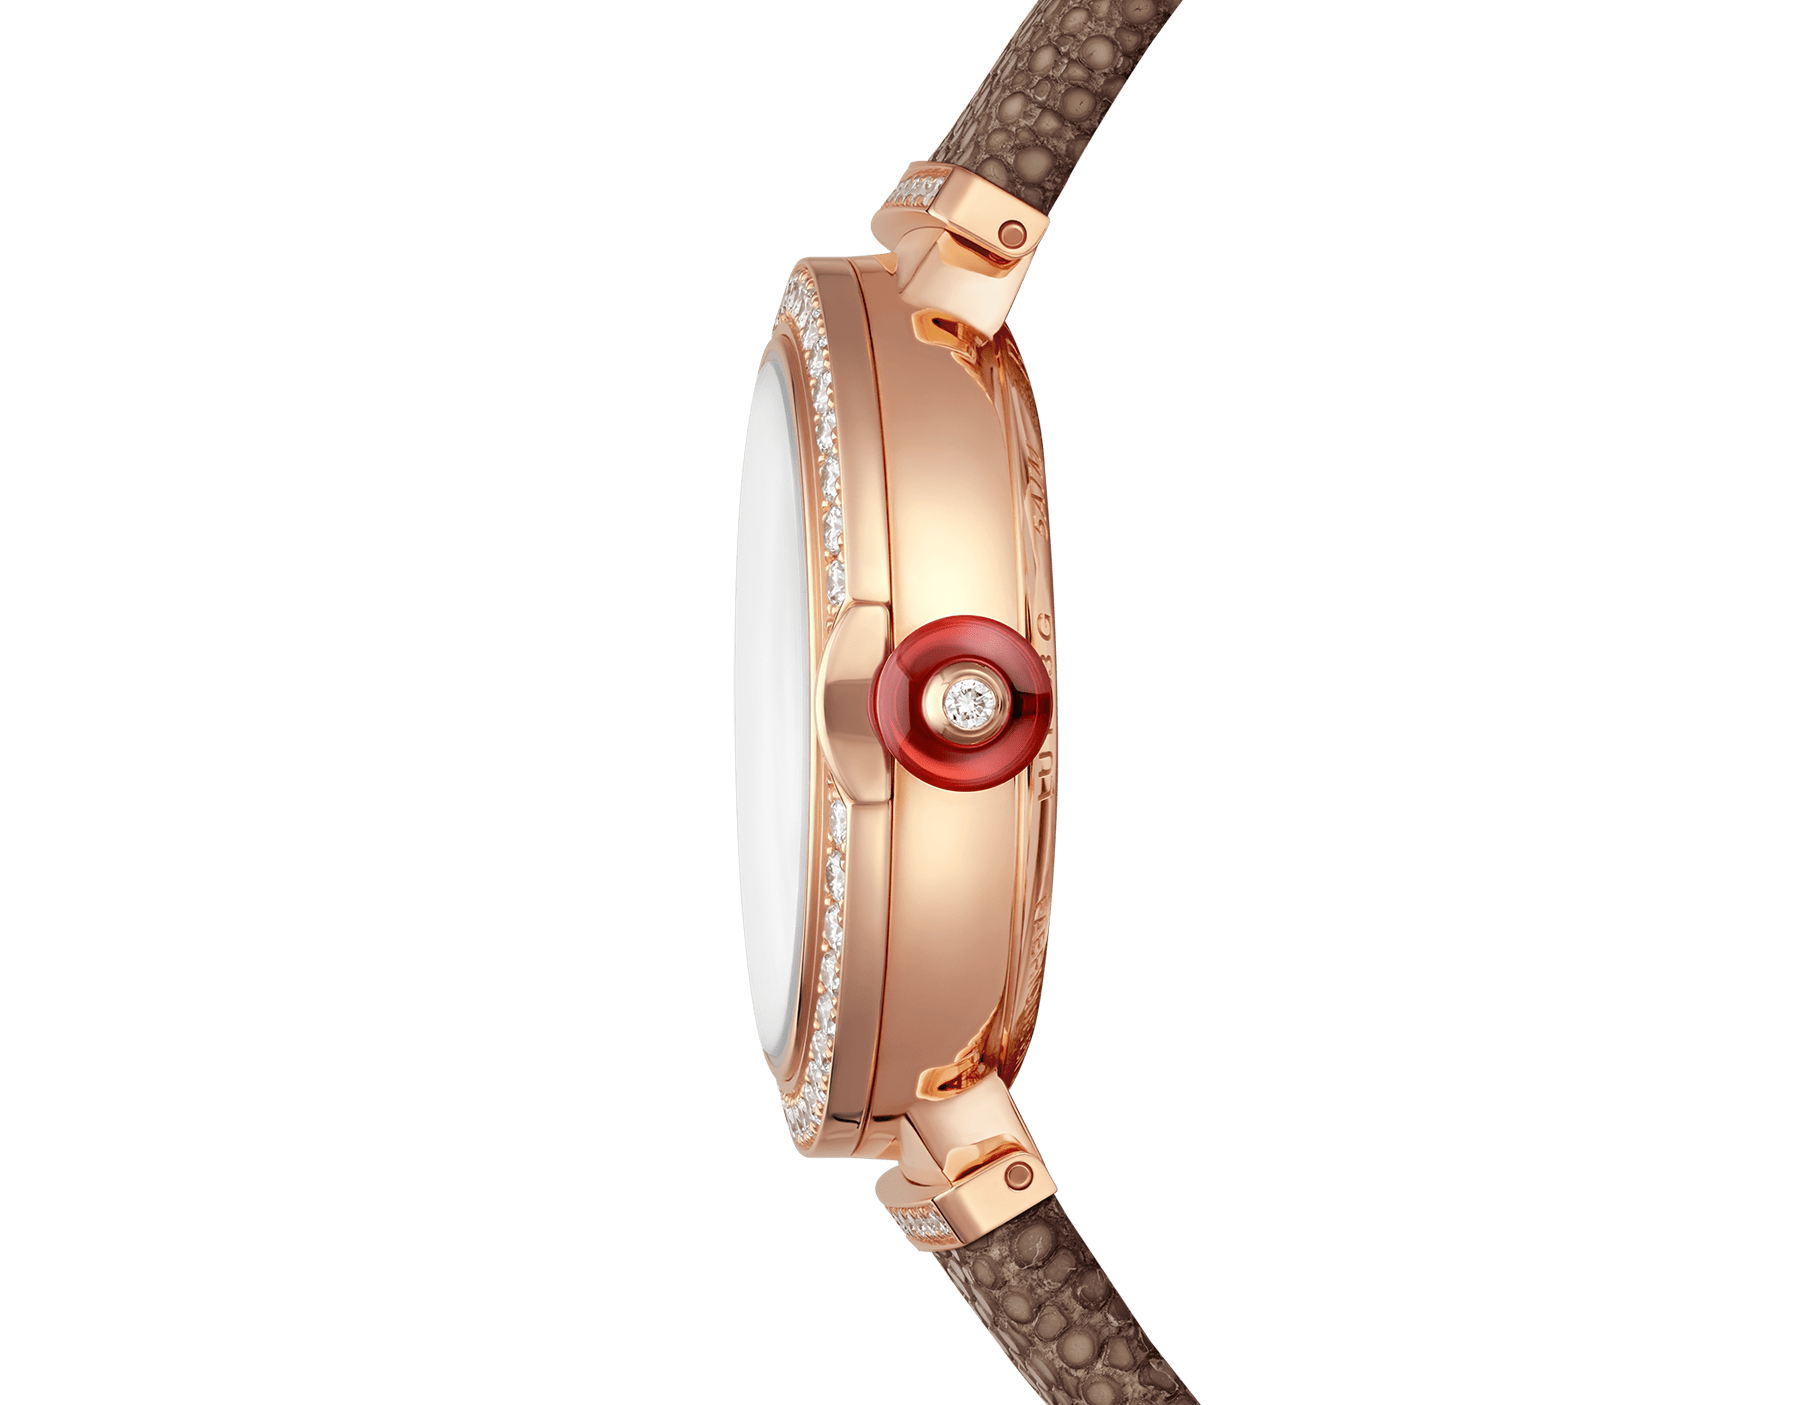 LVCEA watch with 18 kt rose gold case set with diamonds, 18 kt rose gold mosaic dial and bronze galuchat bracelet. 102799 image 3